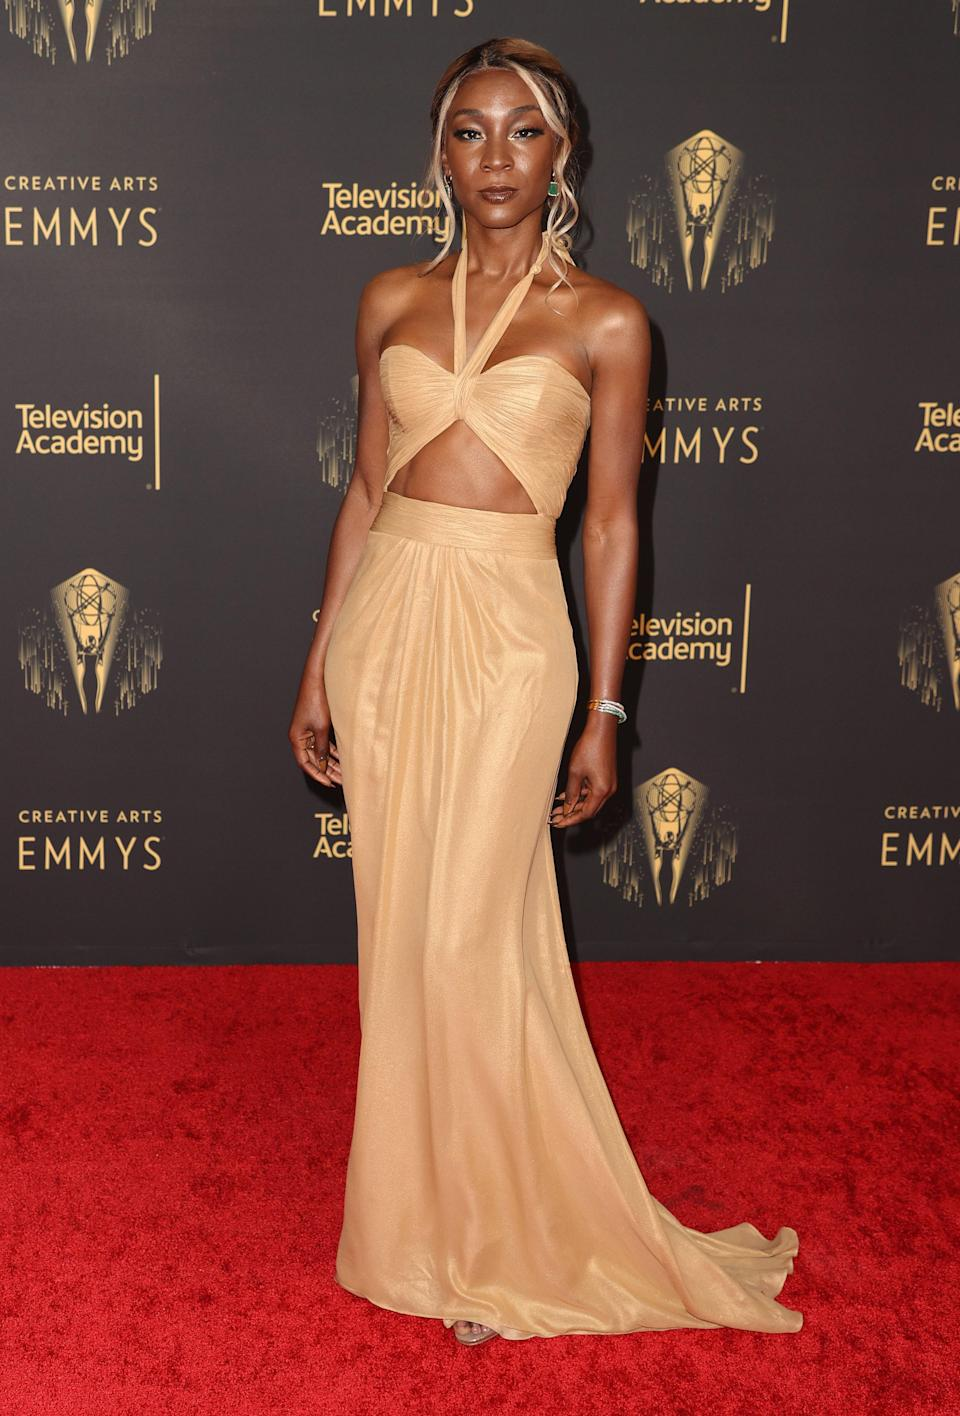 Angelica Ross looked chic in a cutout gown with a halter neck.